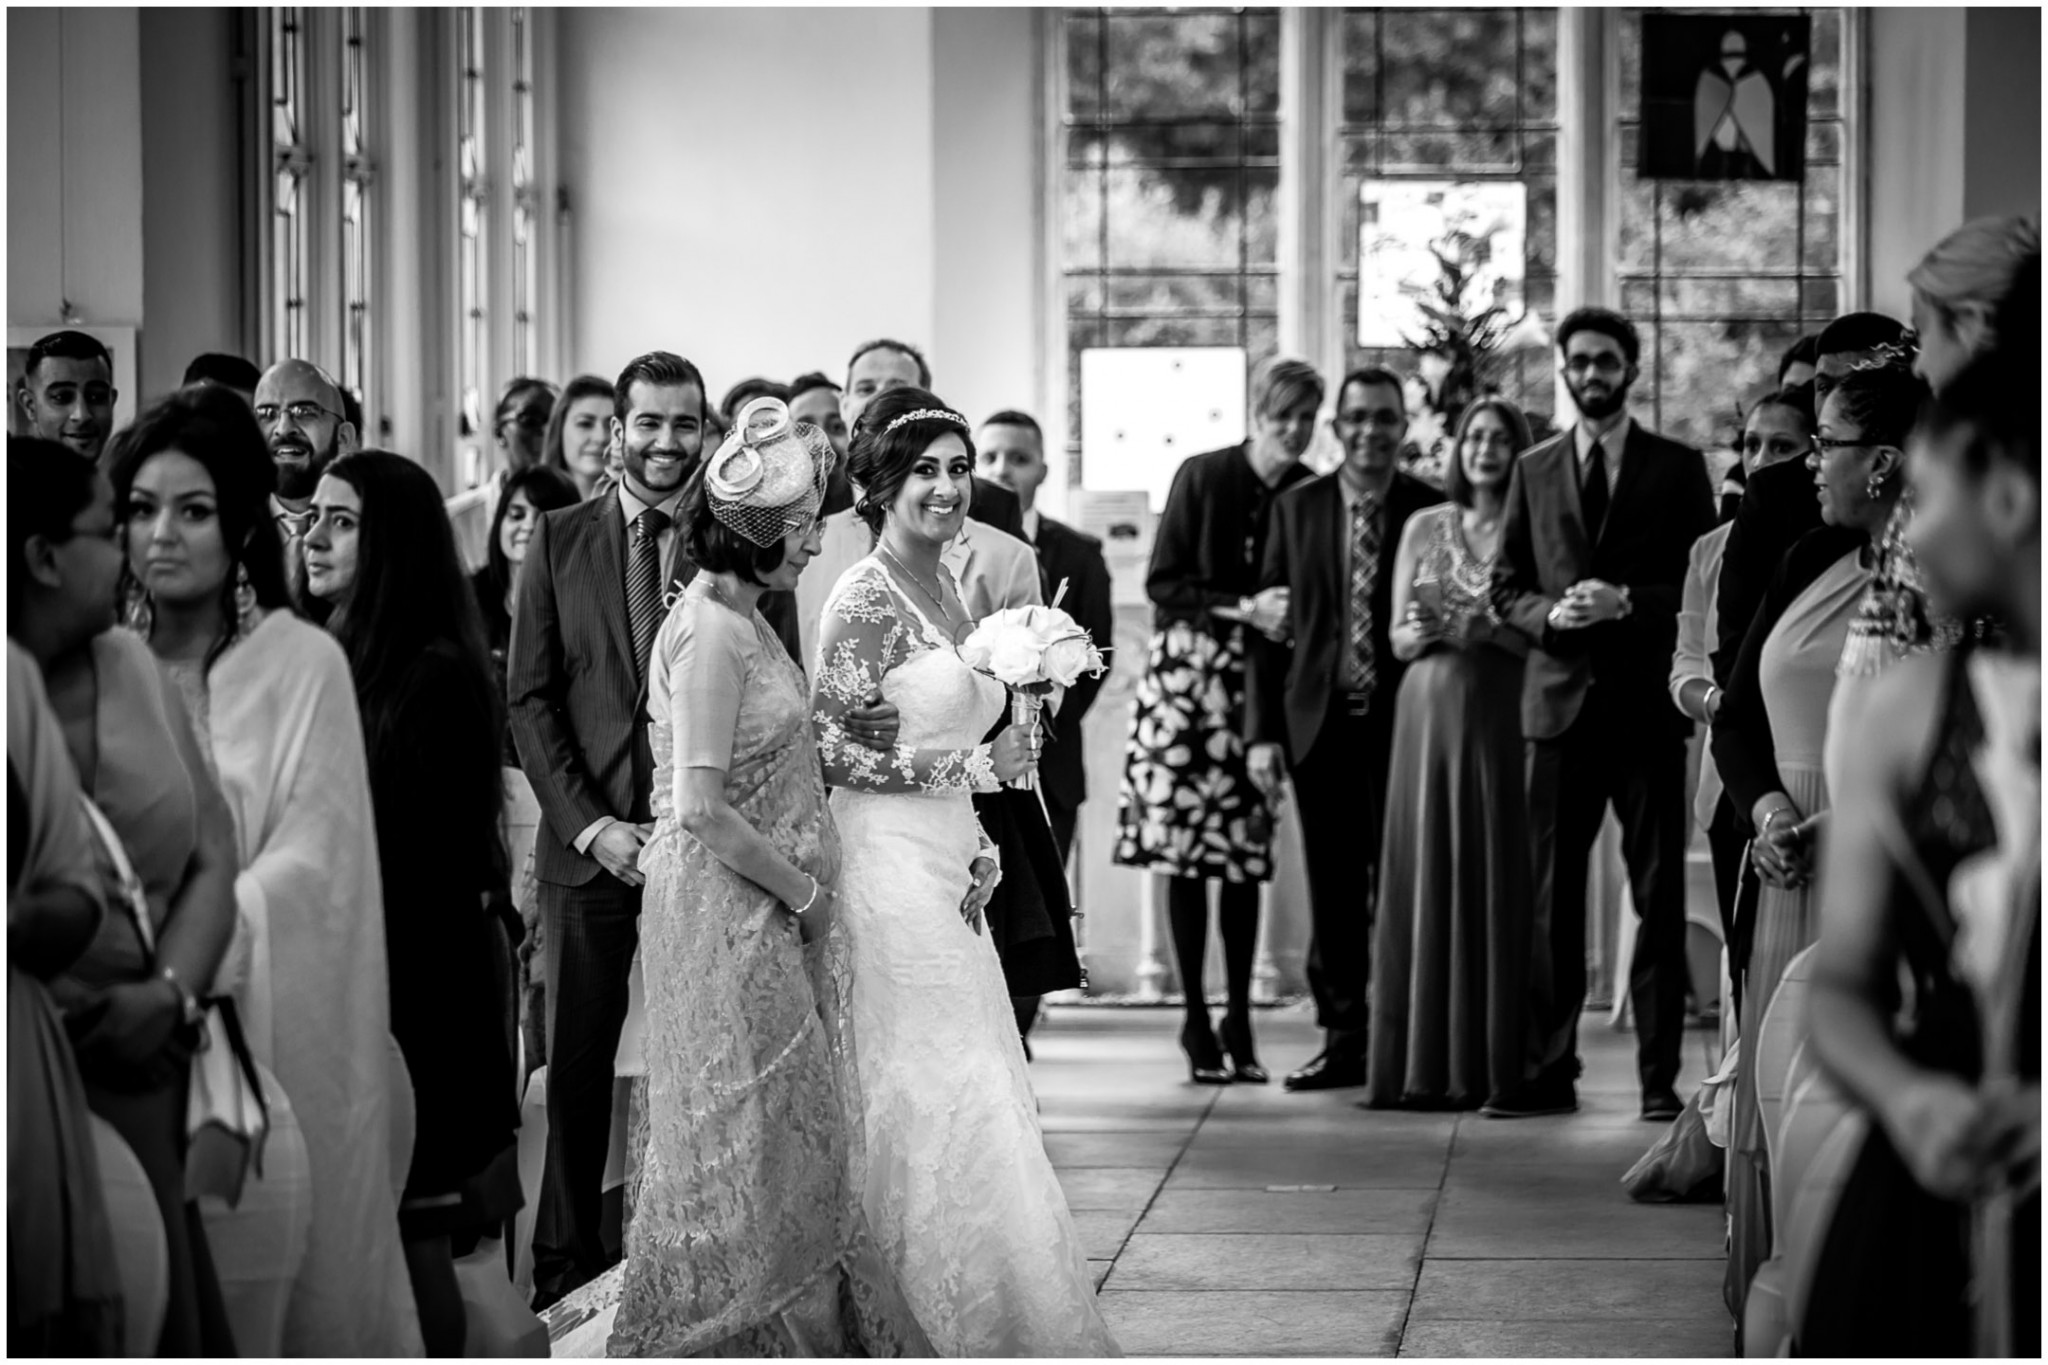 Highcliffe Castle Wedding Bride and Bride's Mother walking into the ceremony